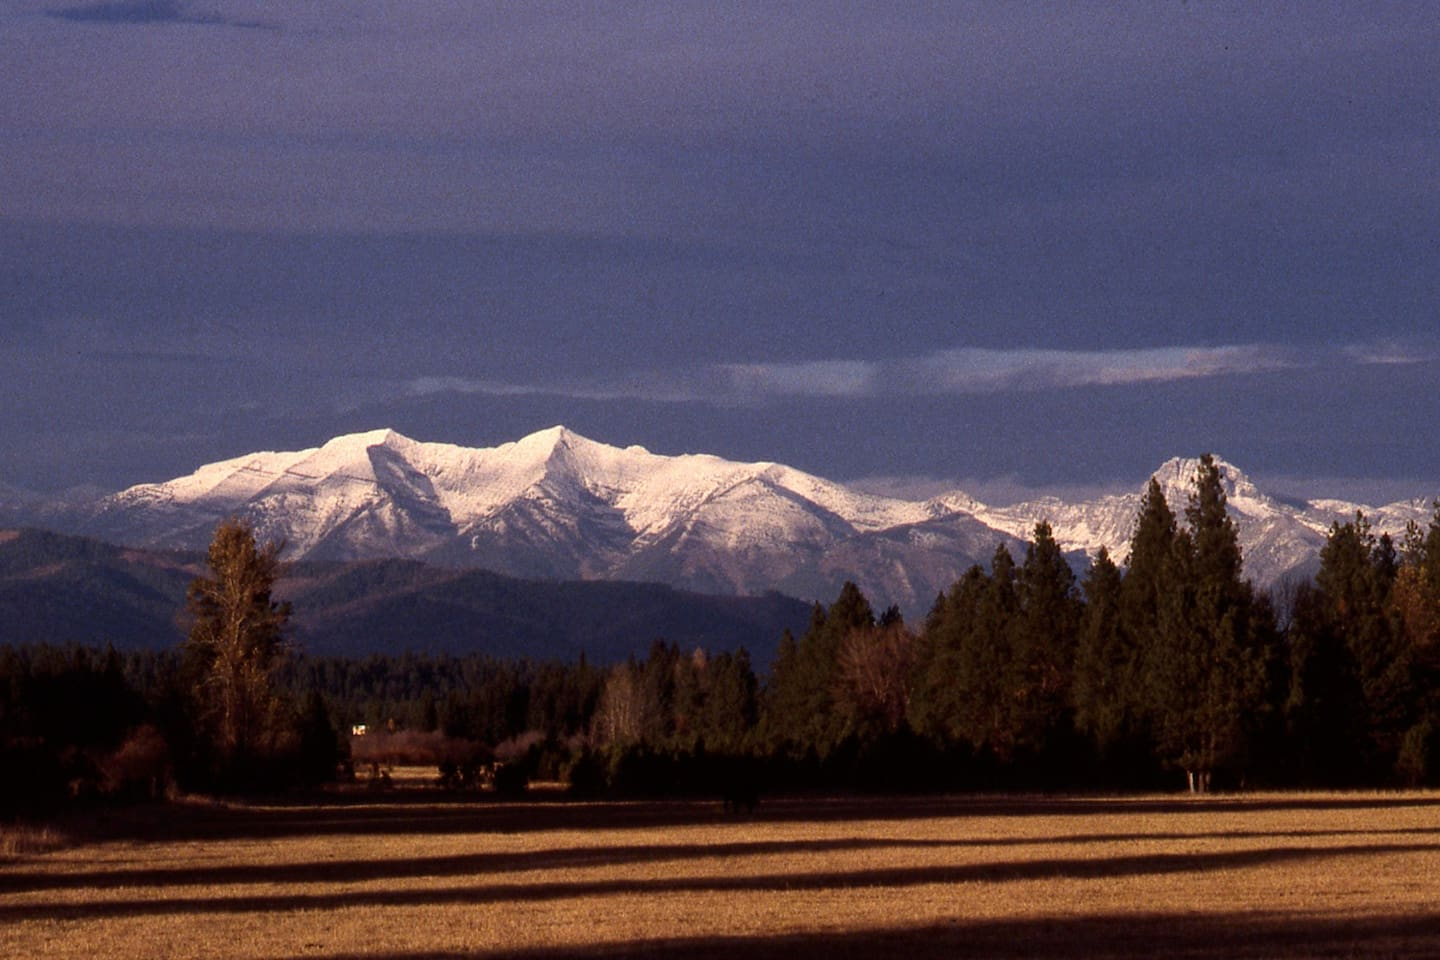 The Mission Mountains are seldom without snow